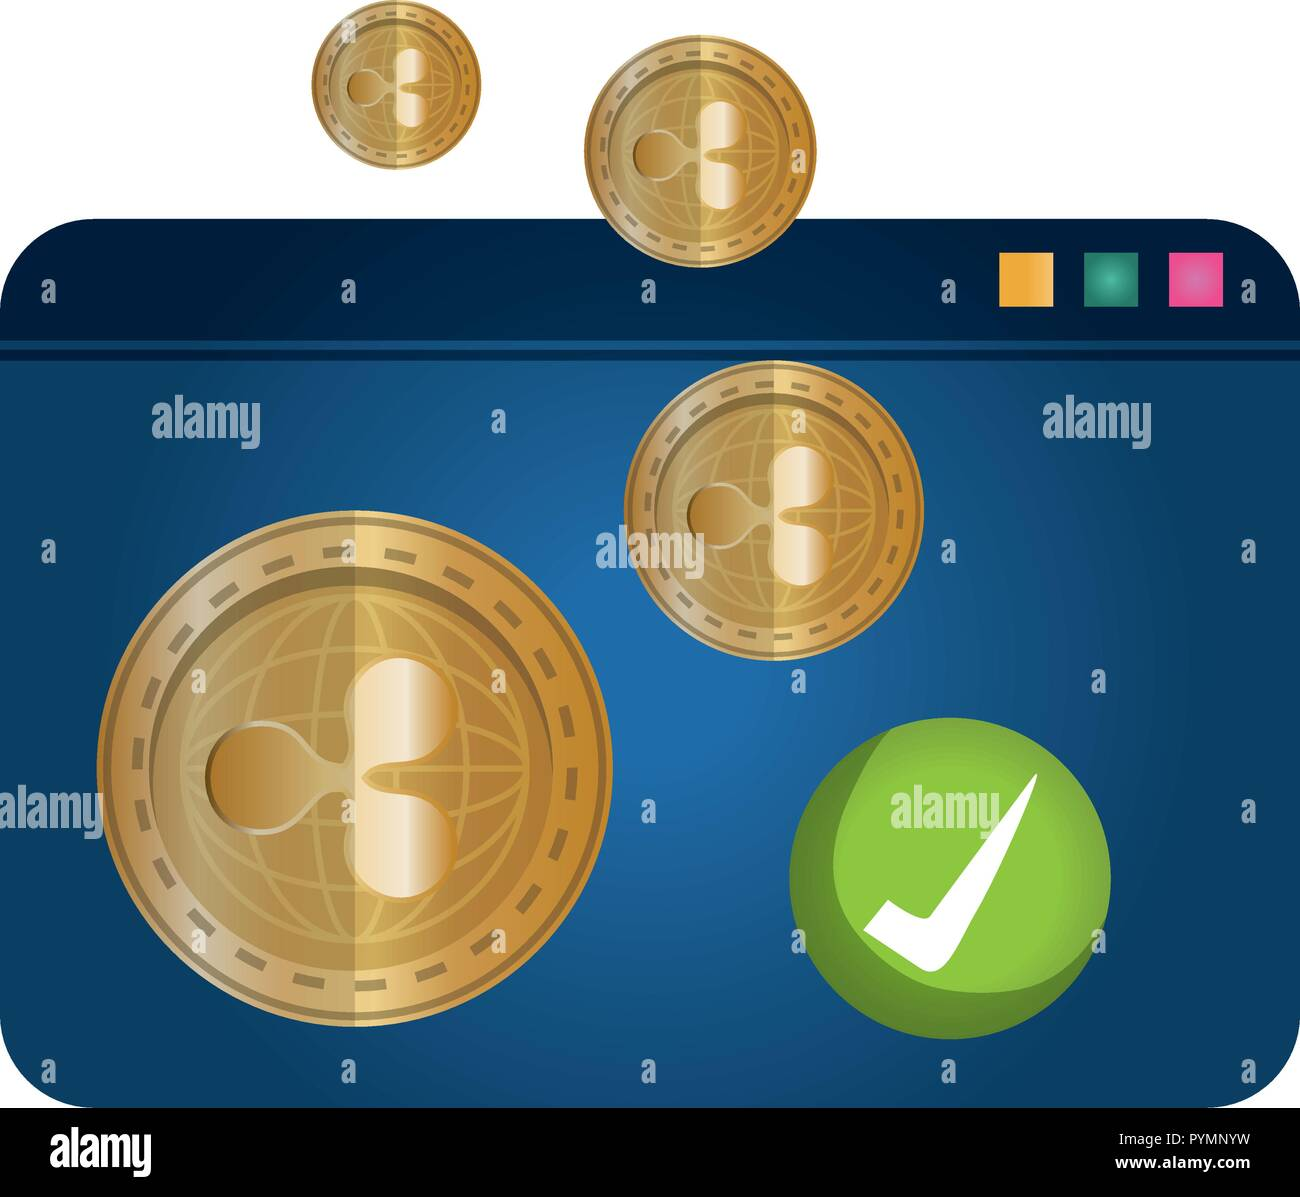 tamplate webpage with ripple vector illustration design - Stock Image